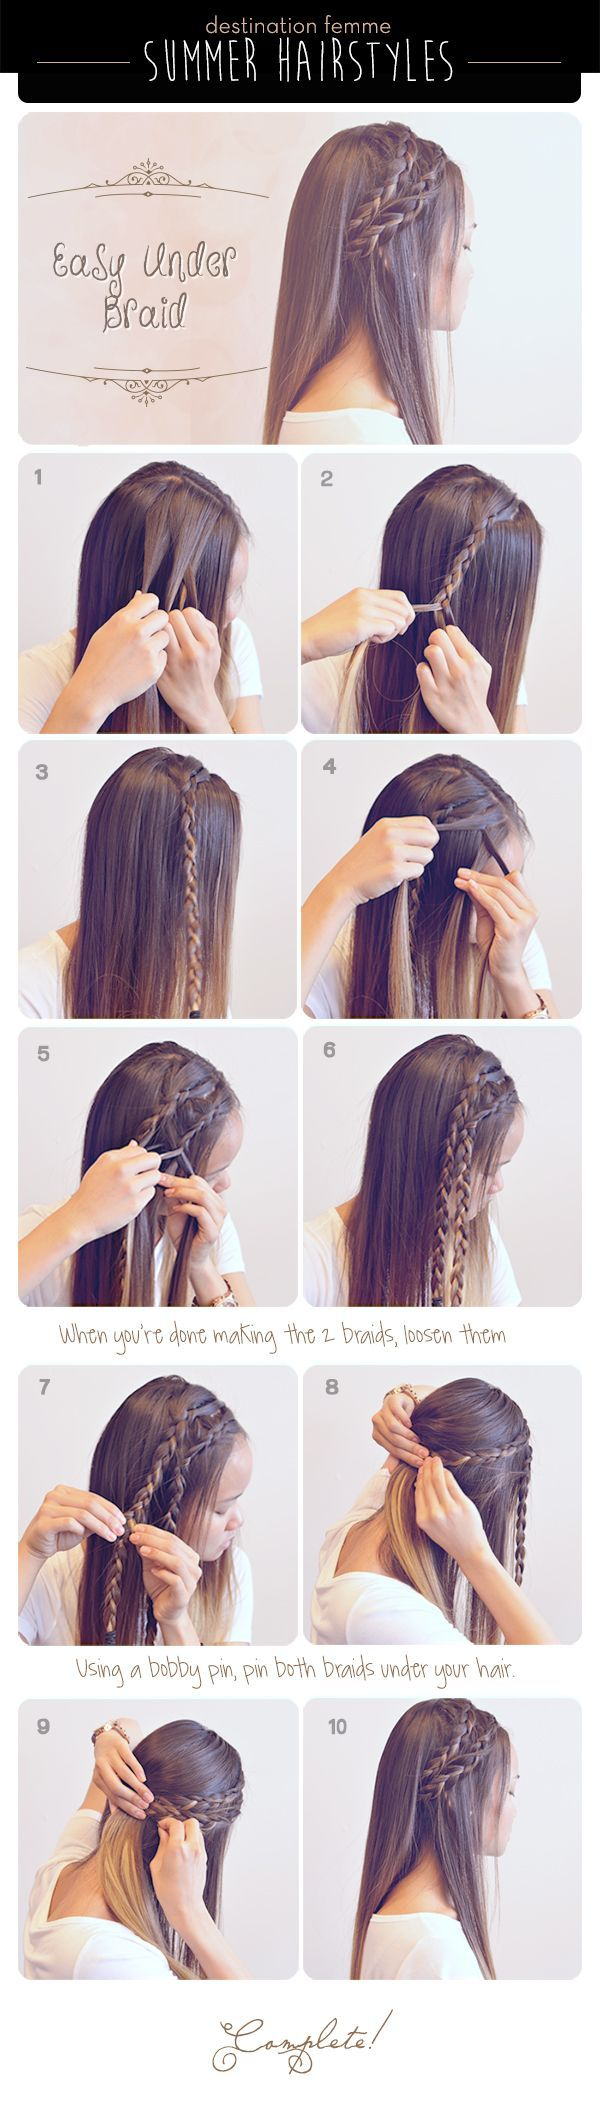 cute u easy braided hairdos for summer destination femme hair